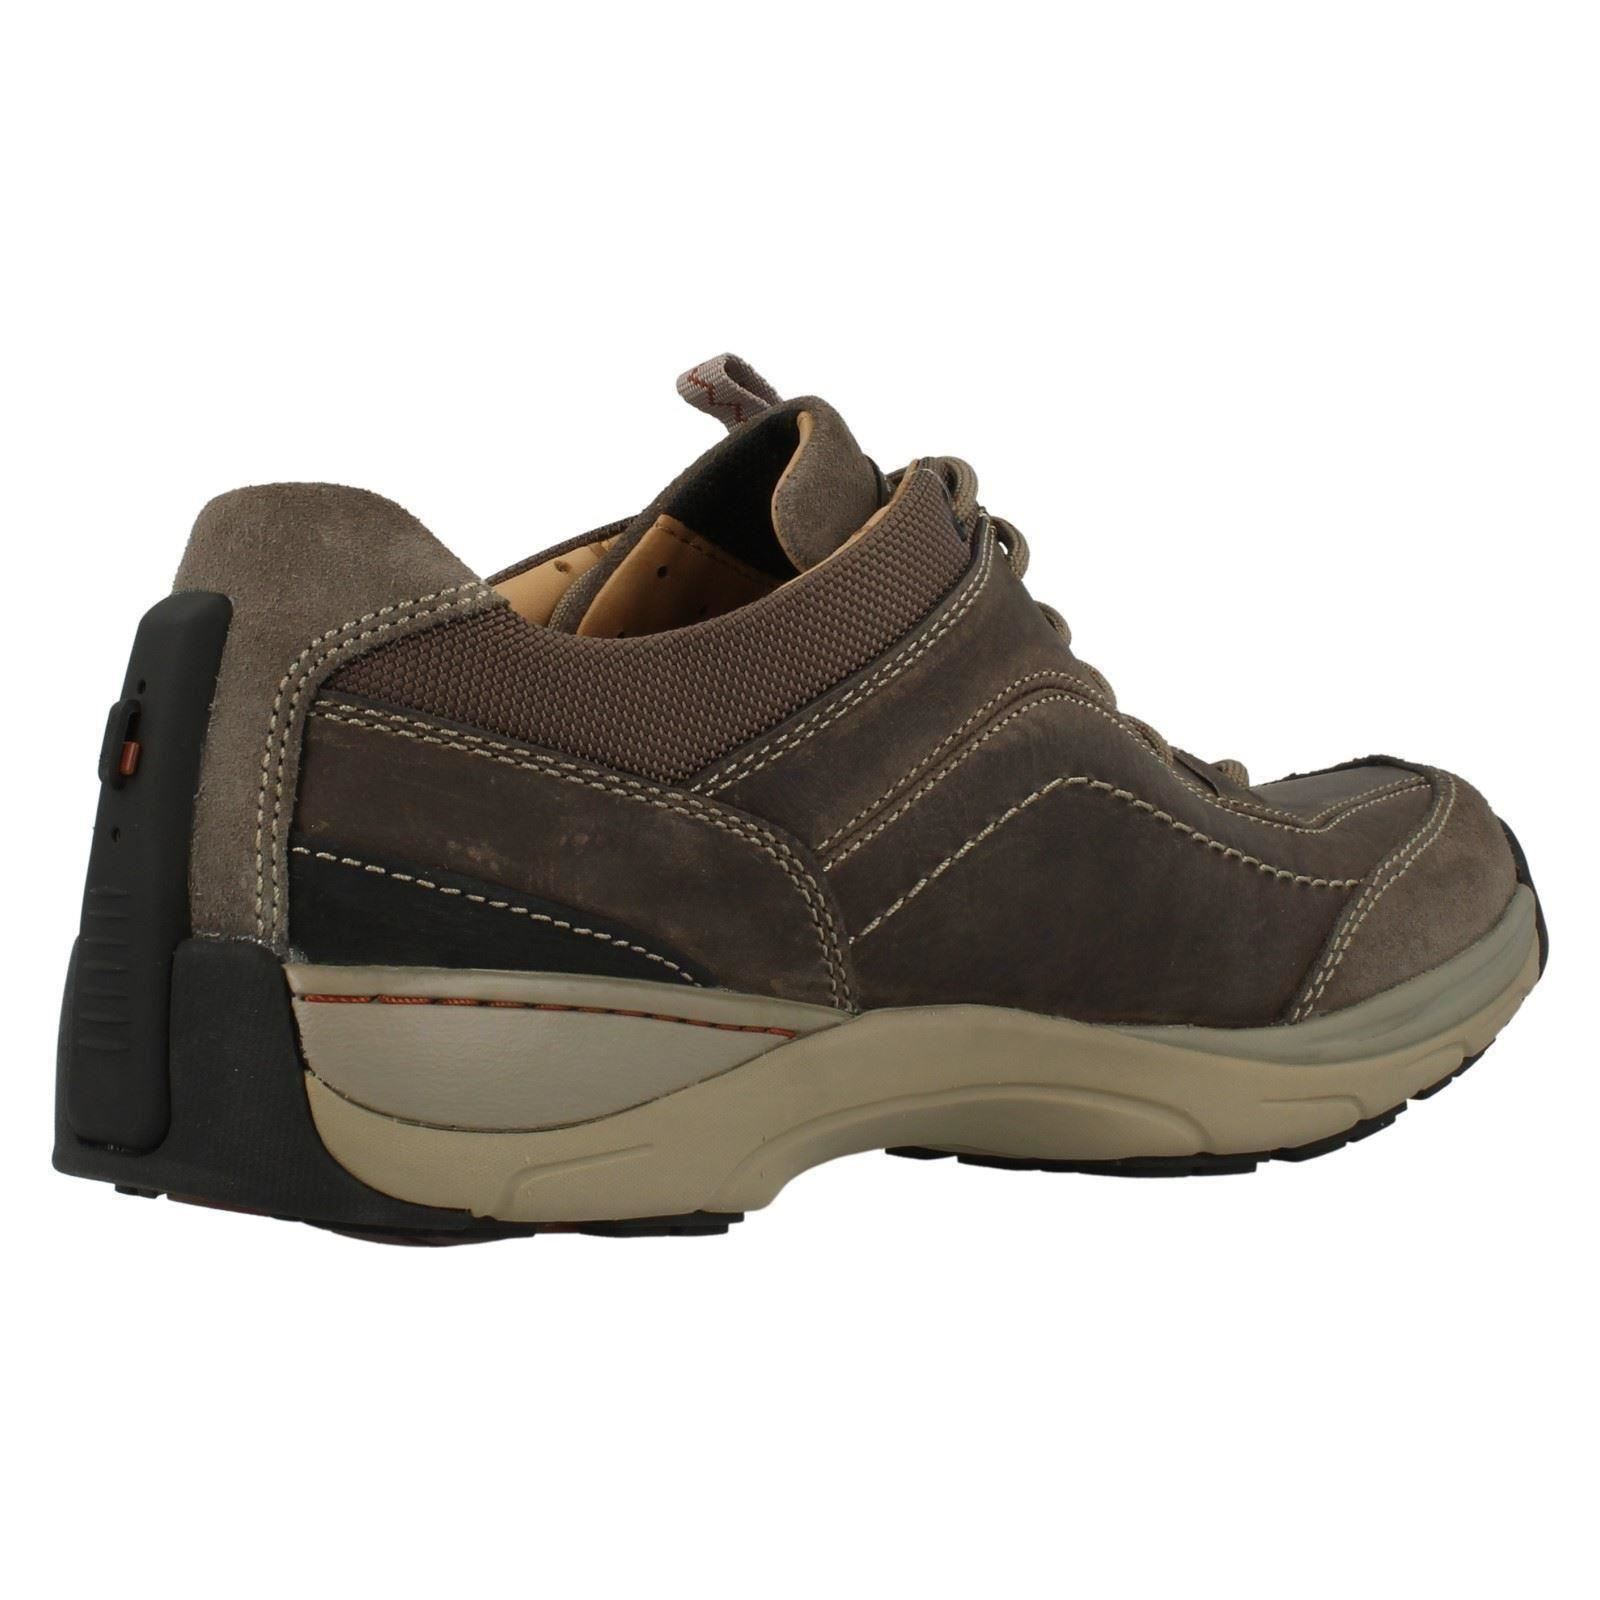 Clarks Air Shoes India